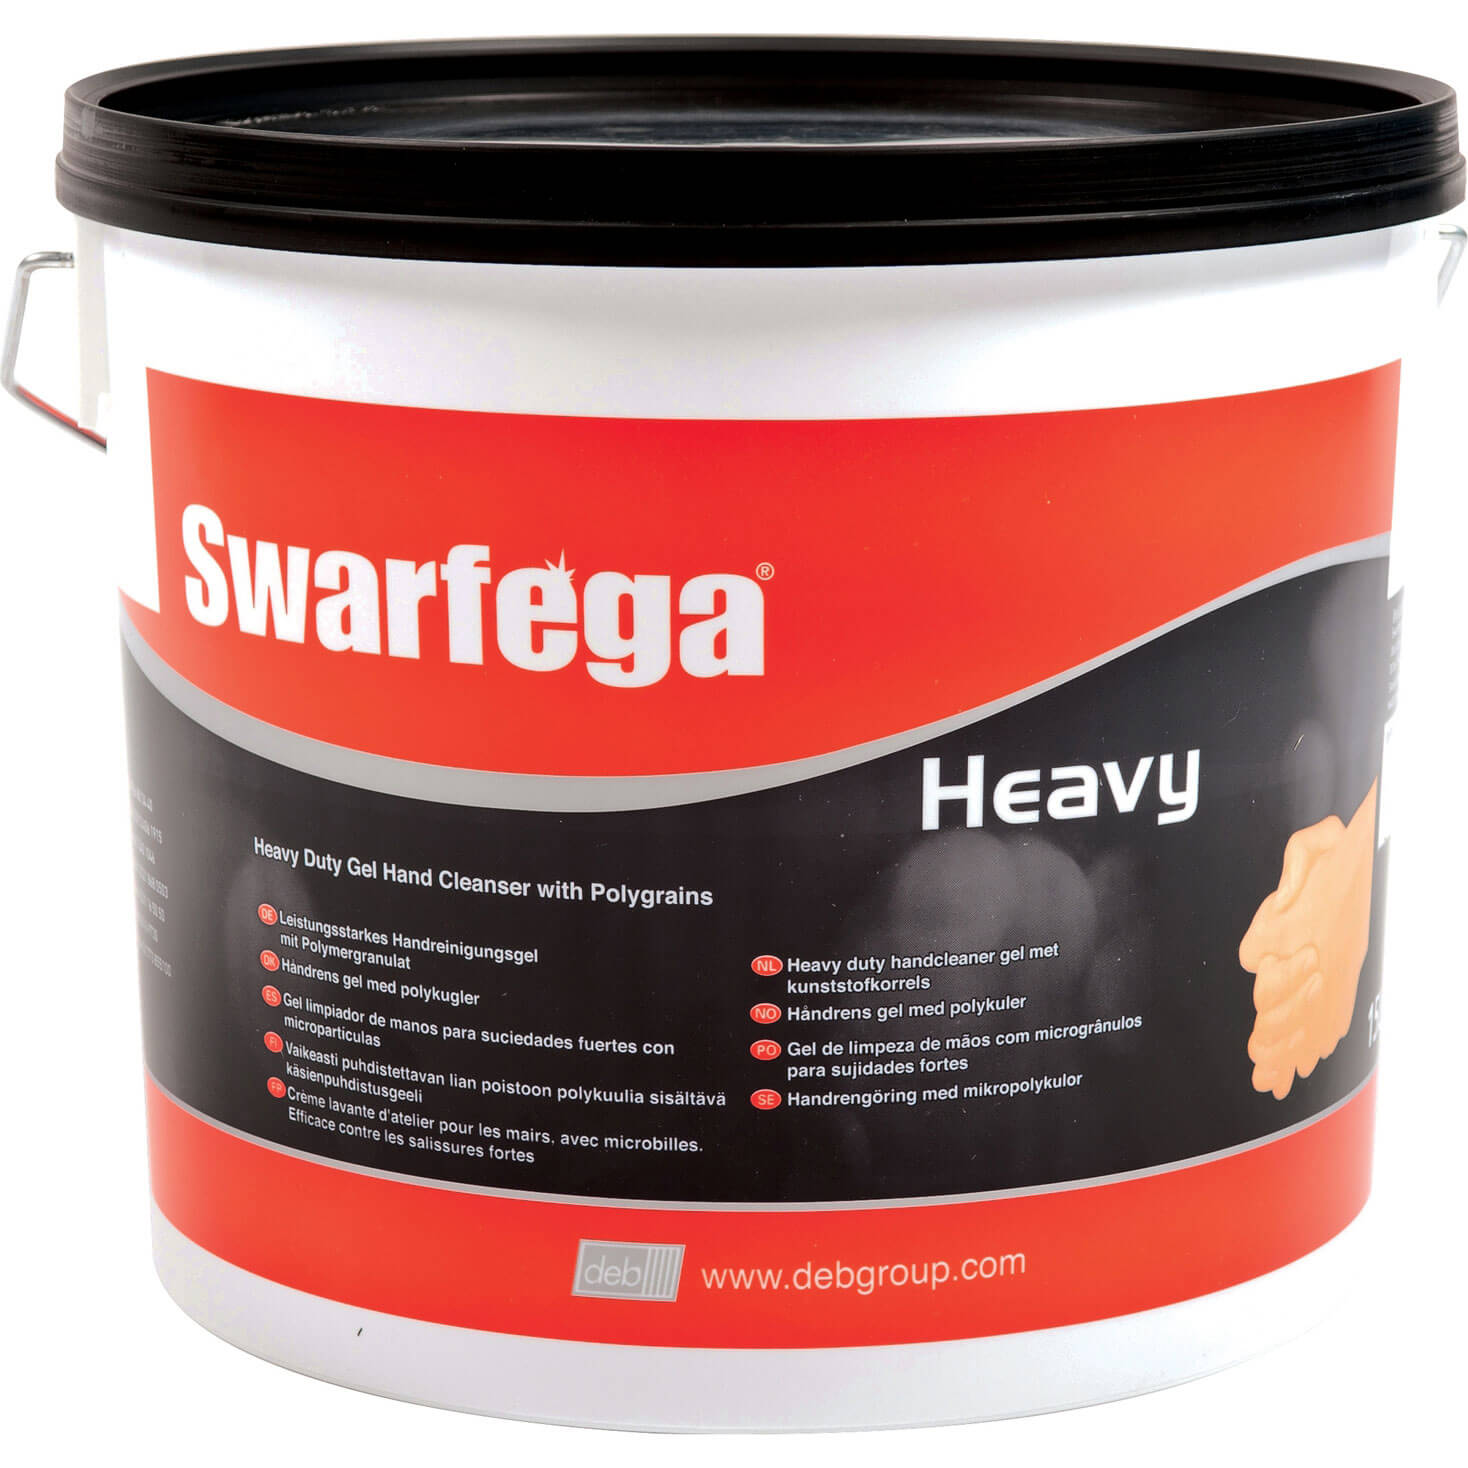 Swarfega Heavy Duty Hand Cleaner 15L